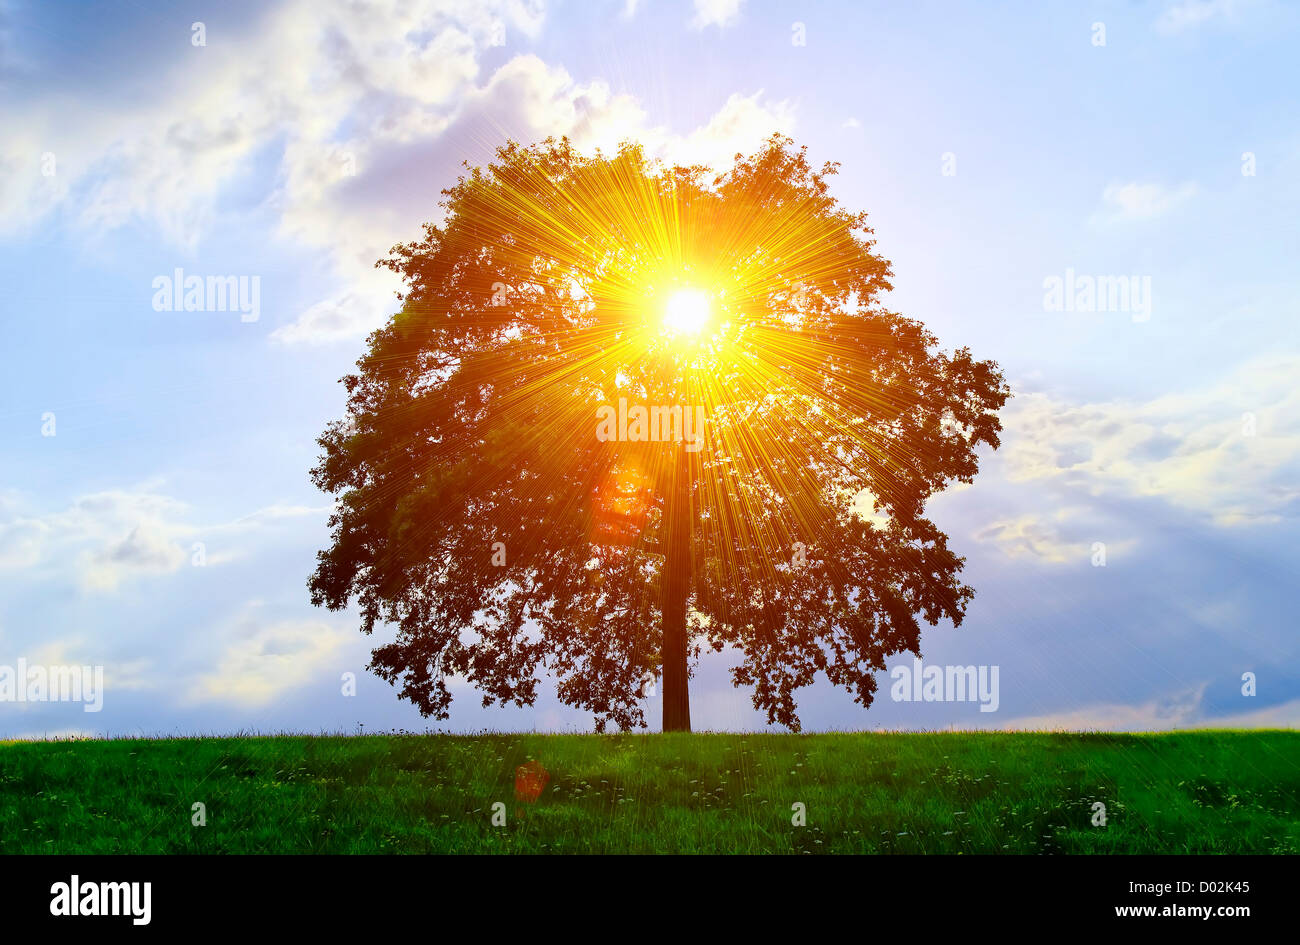 An isolated tree with sunlight effect. Stock Photo